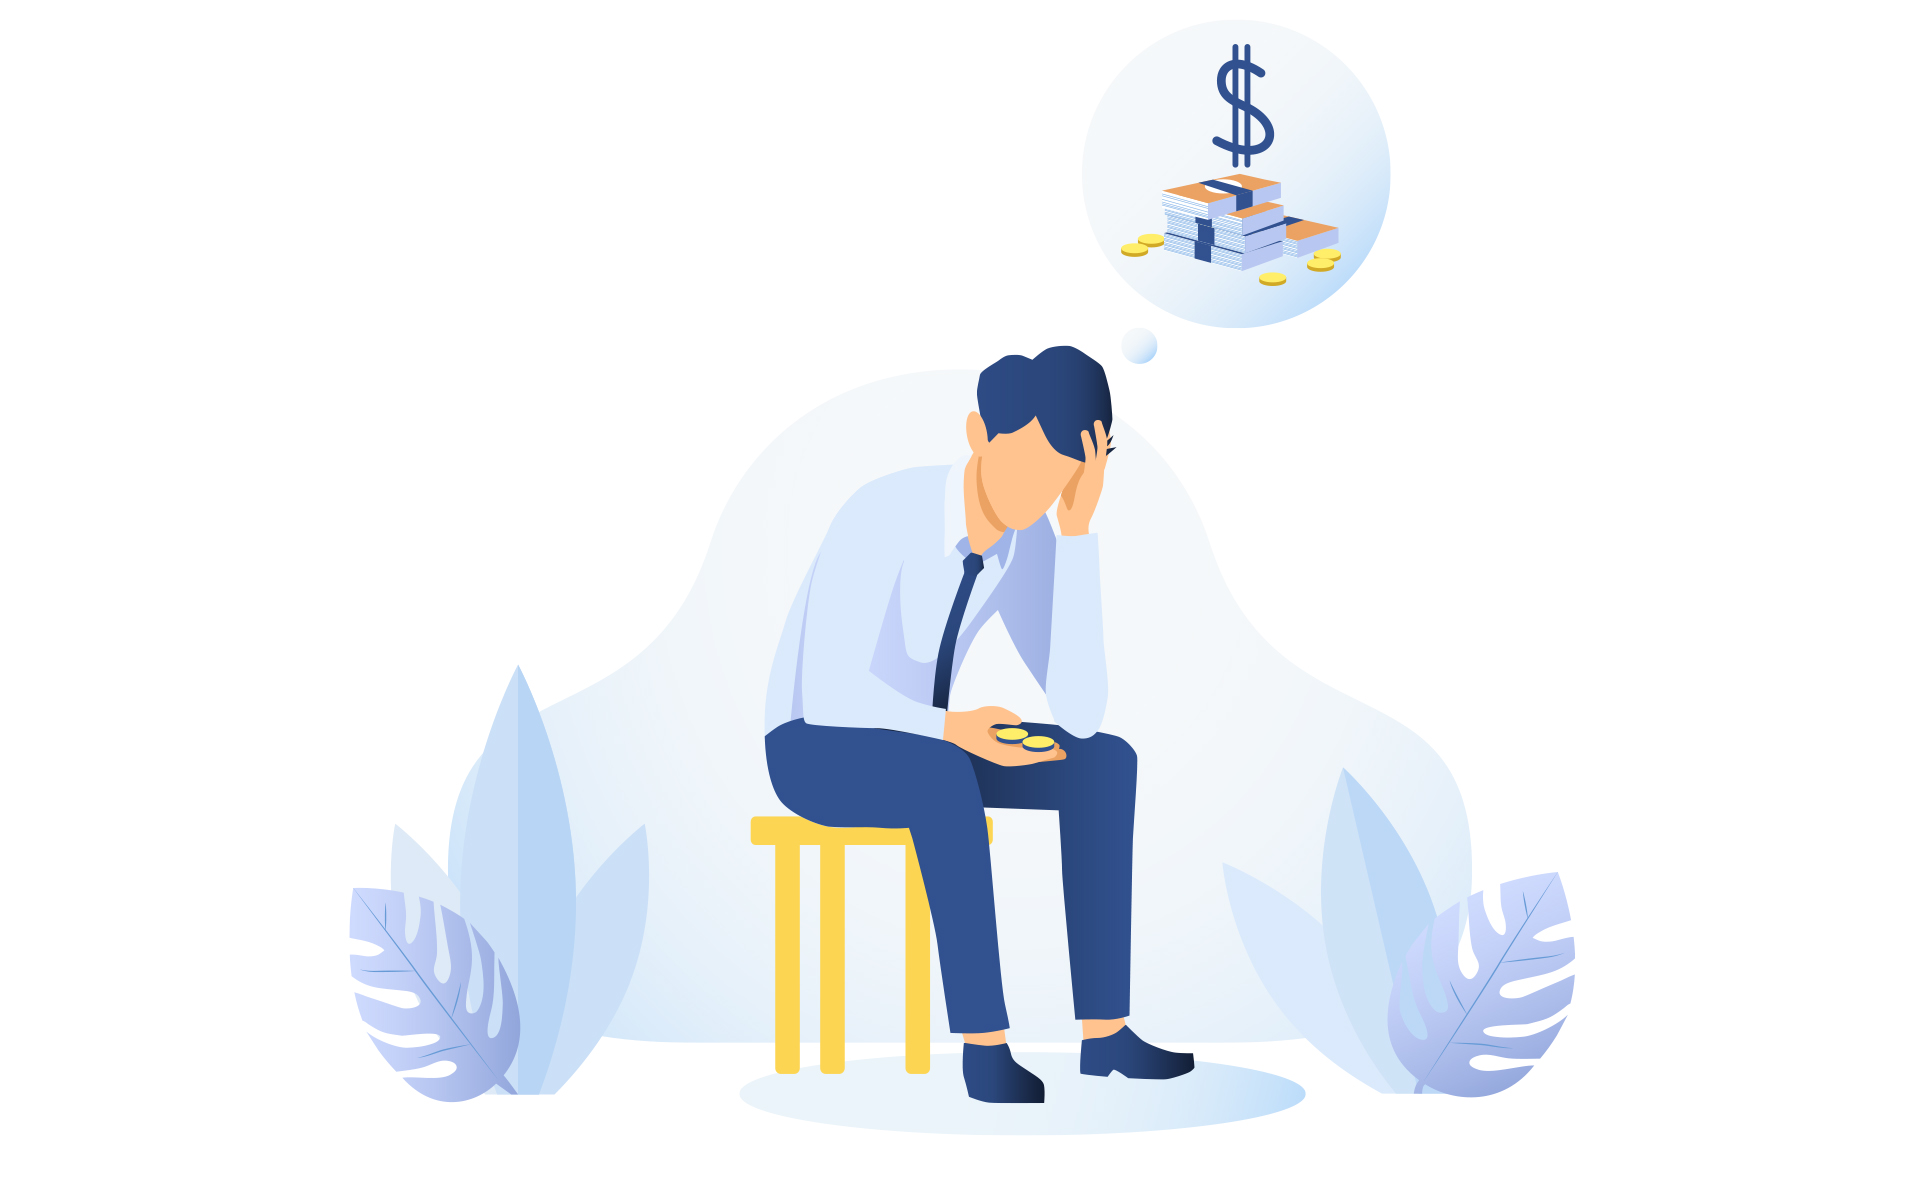 Guided meditation to ease financial stress - Illustration of a man worried about money